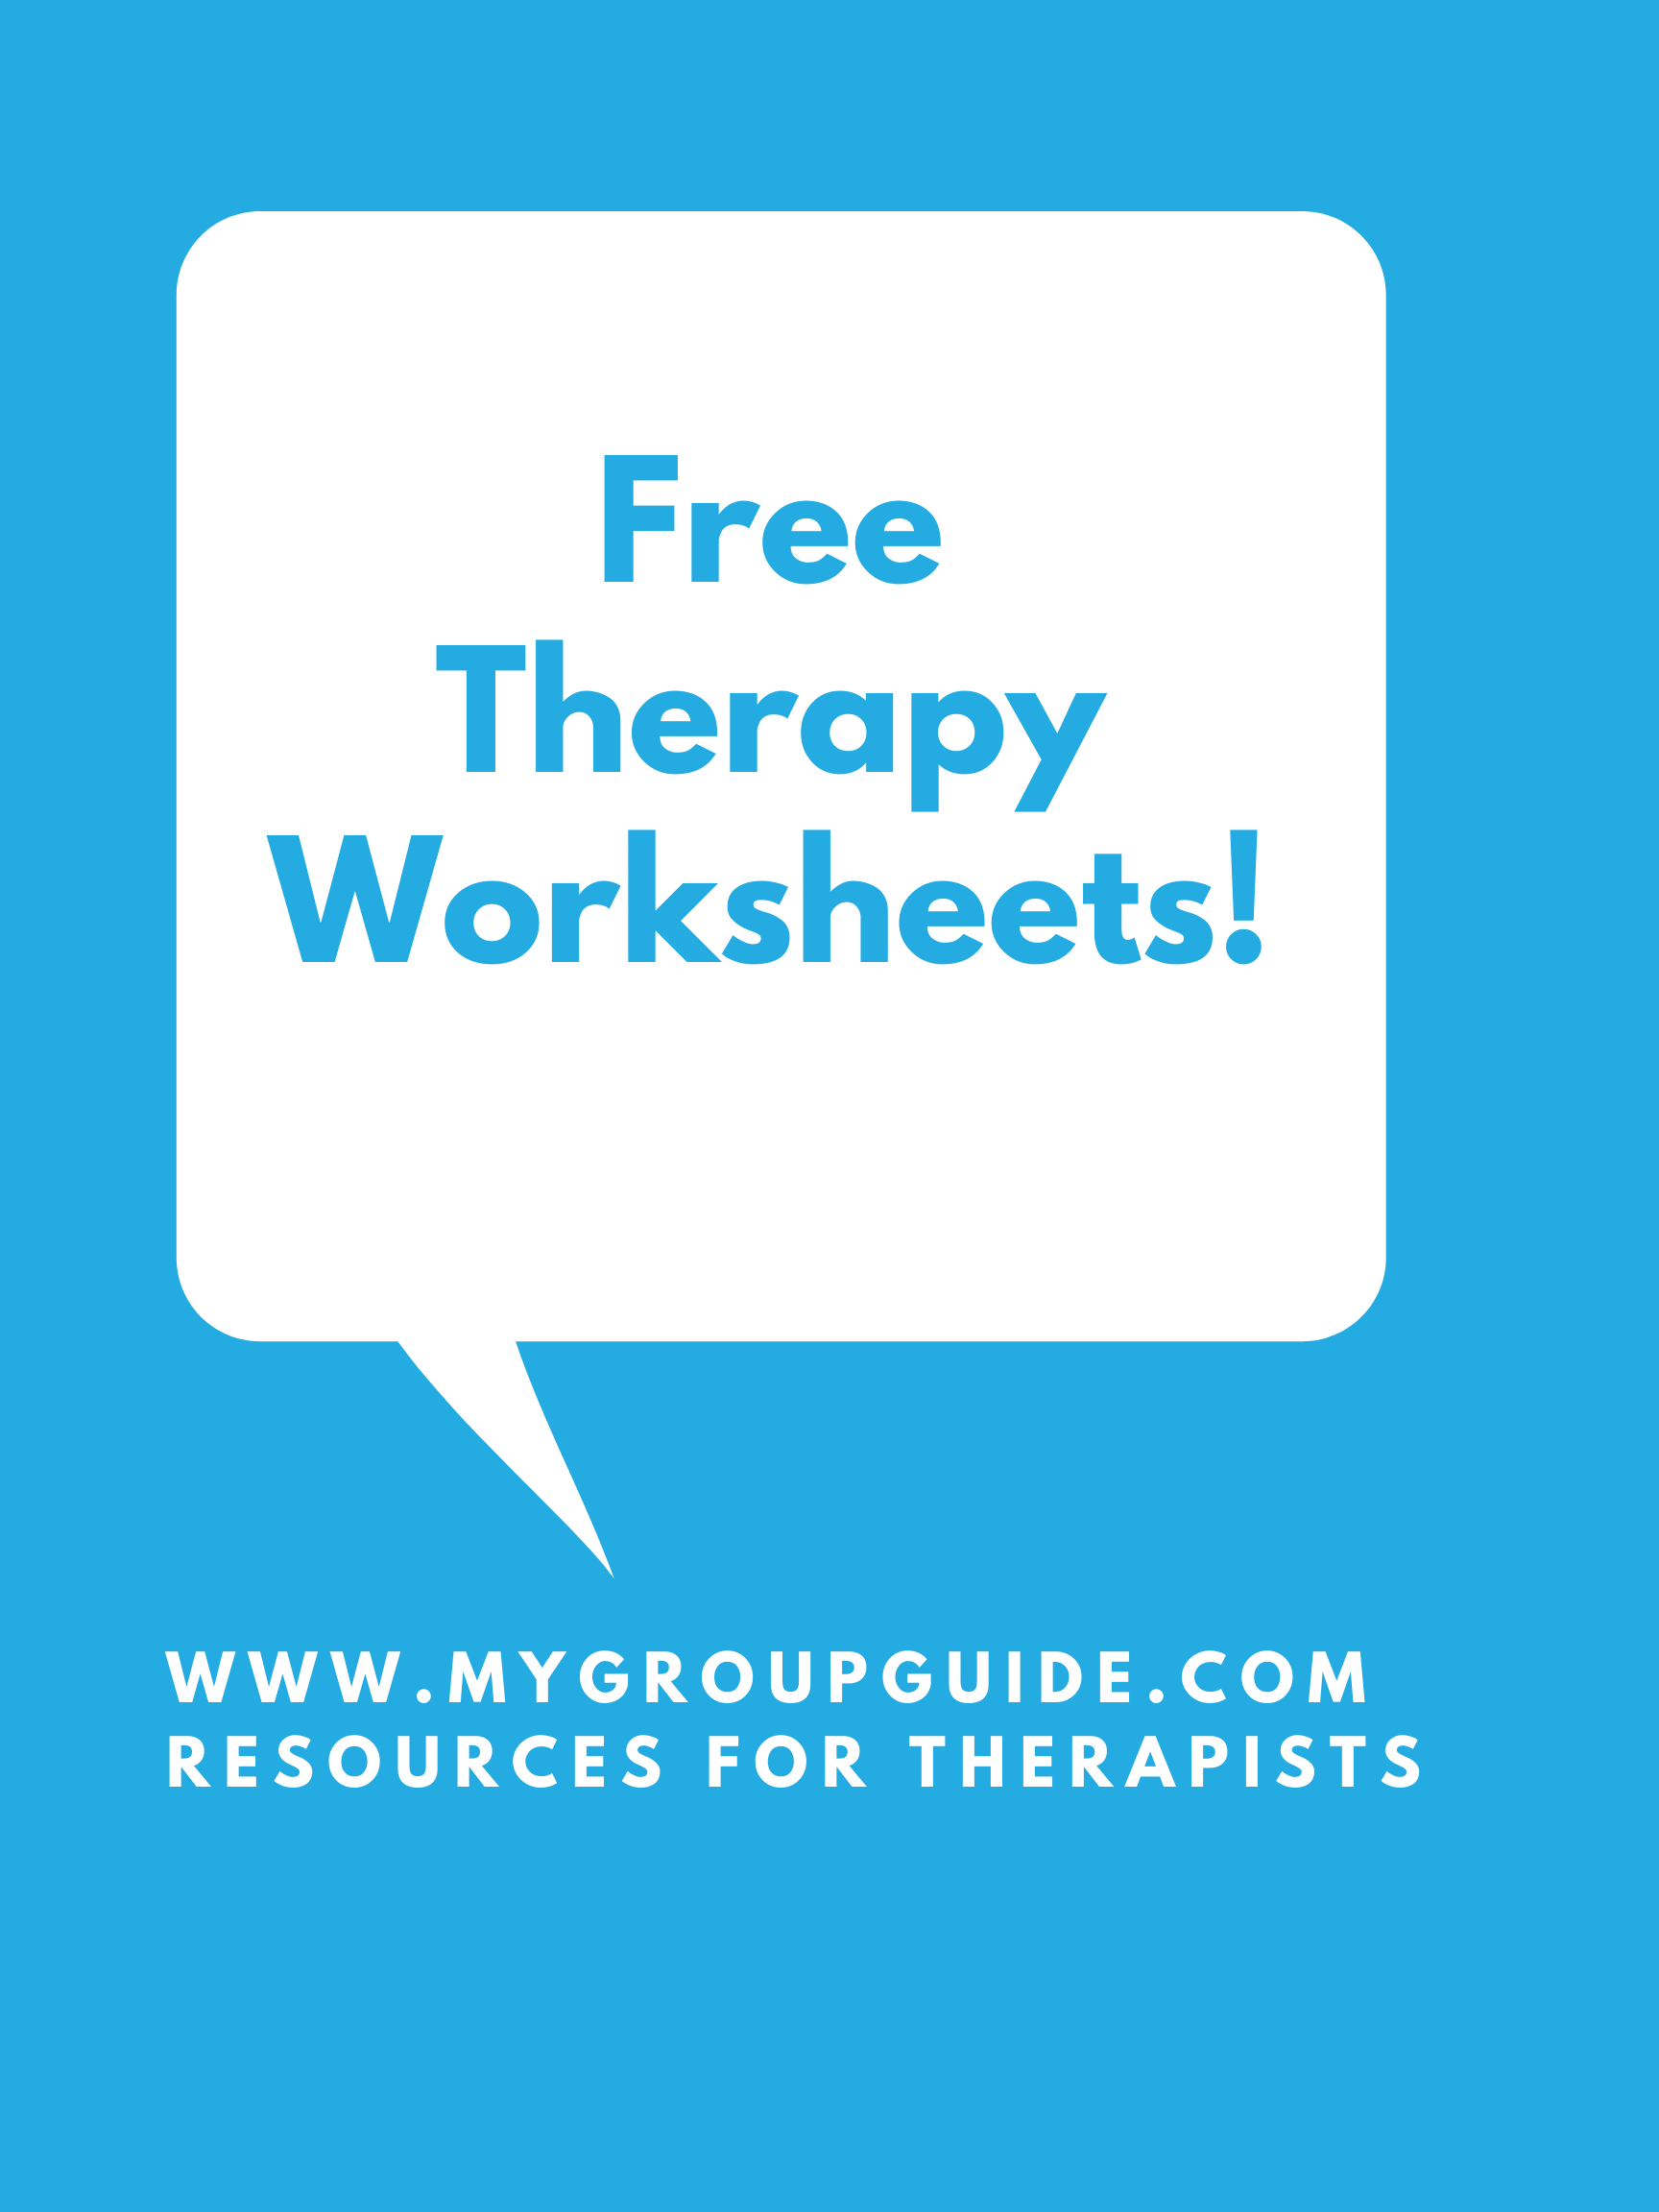 My Group Guide Learn More About Our Therapy Resources In